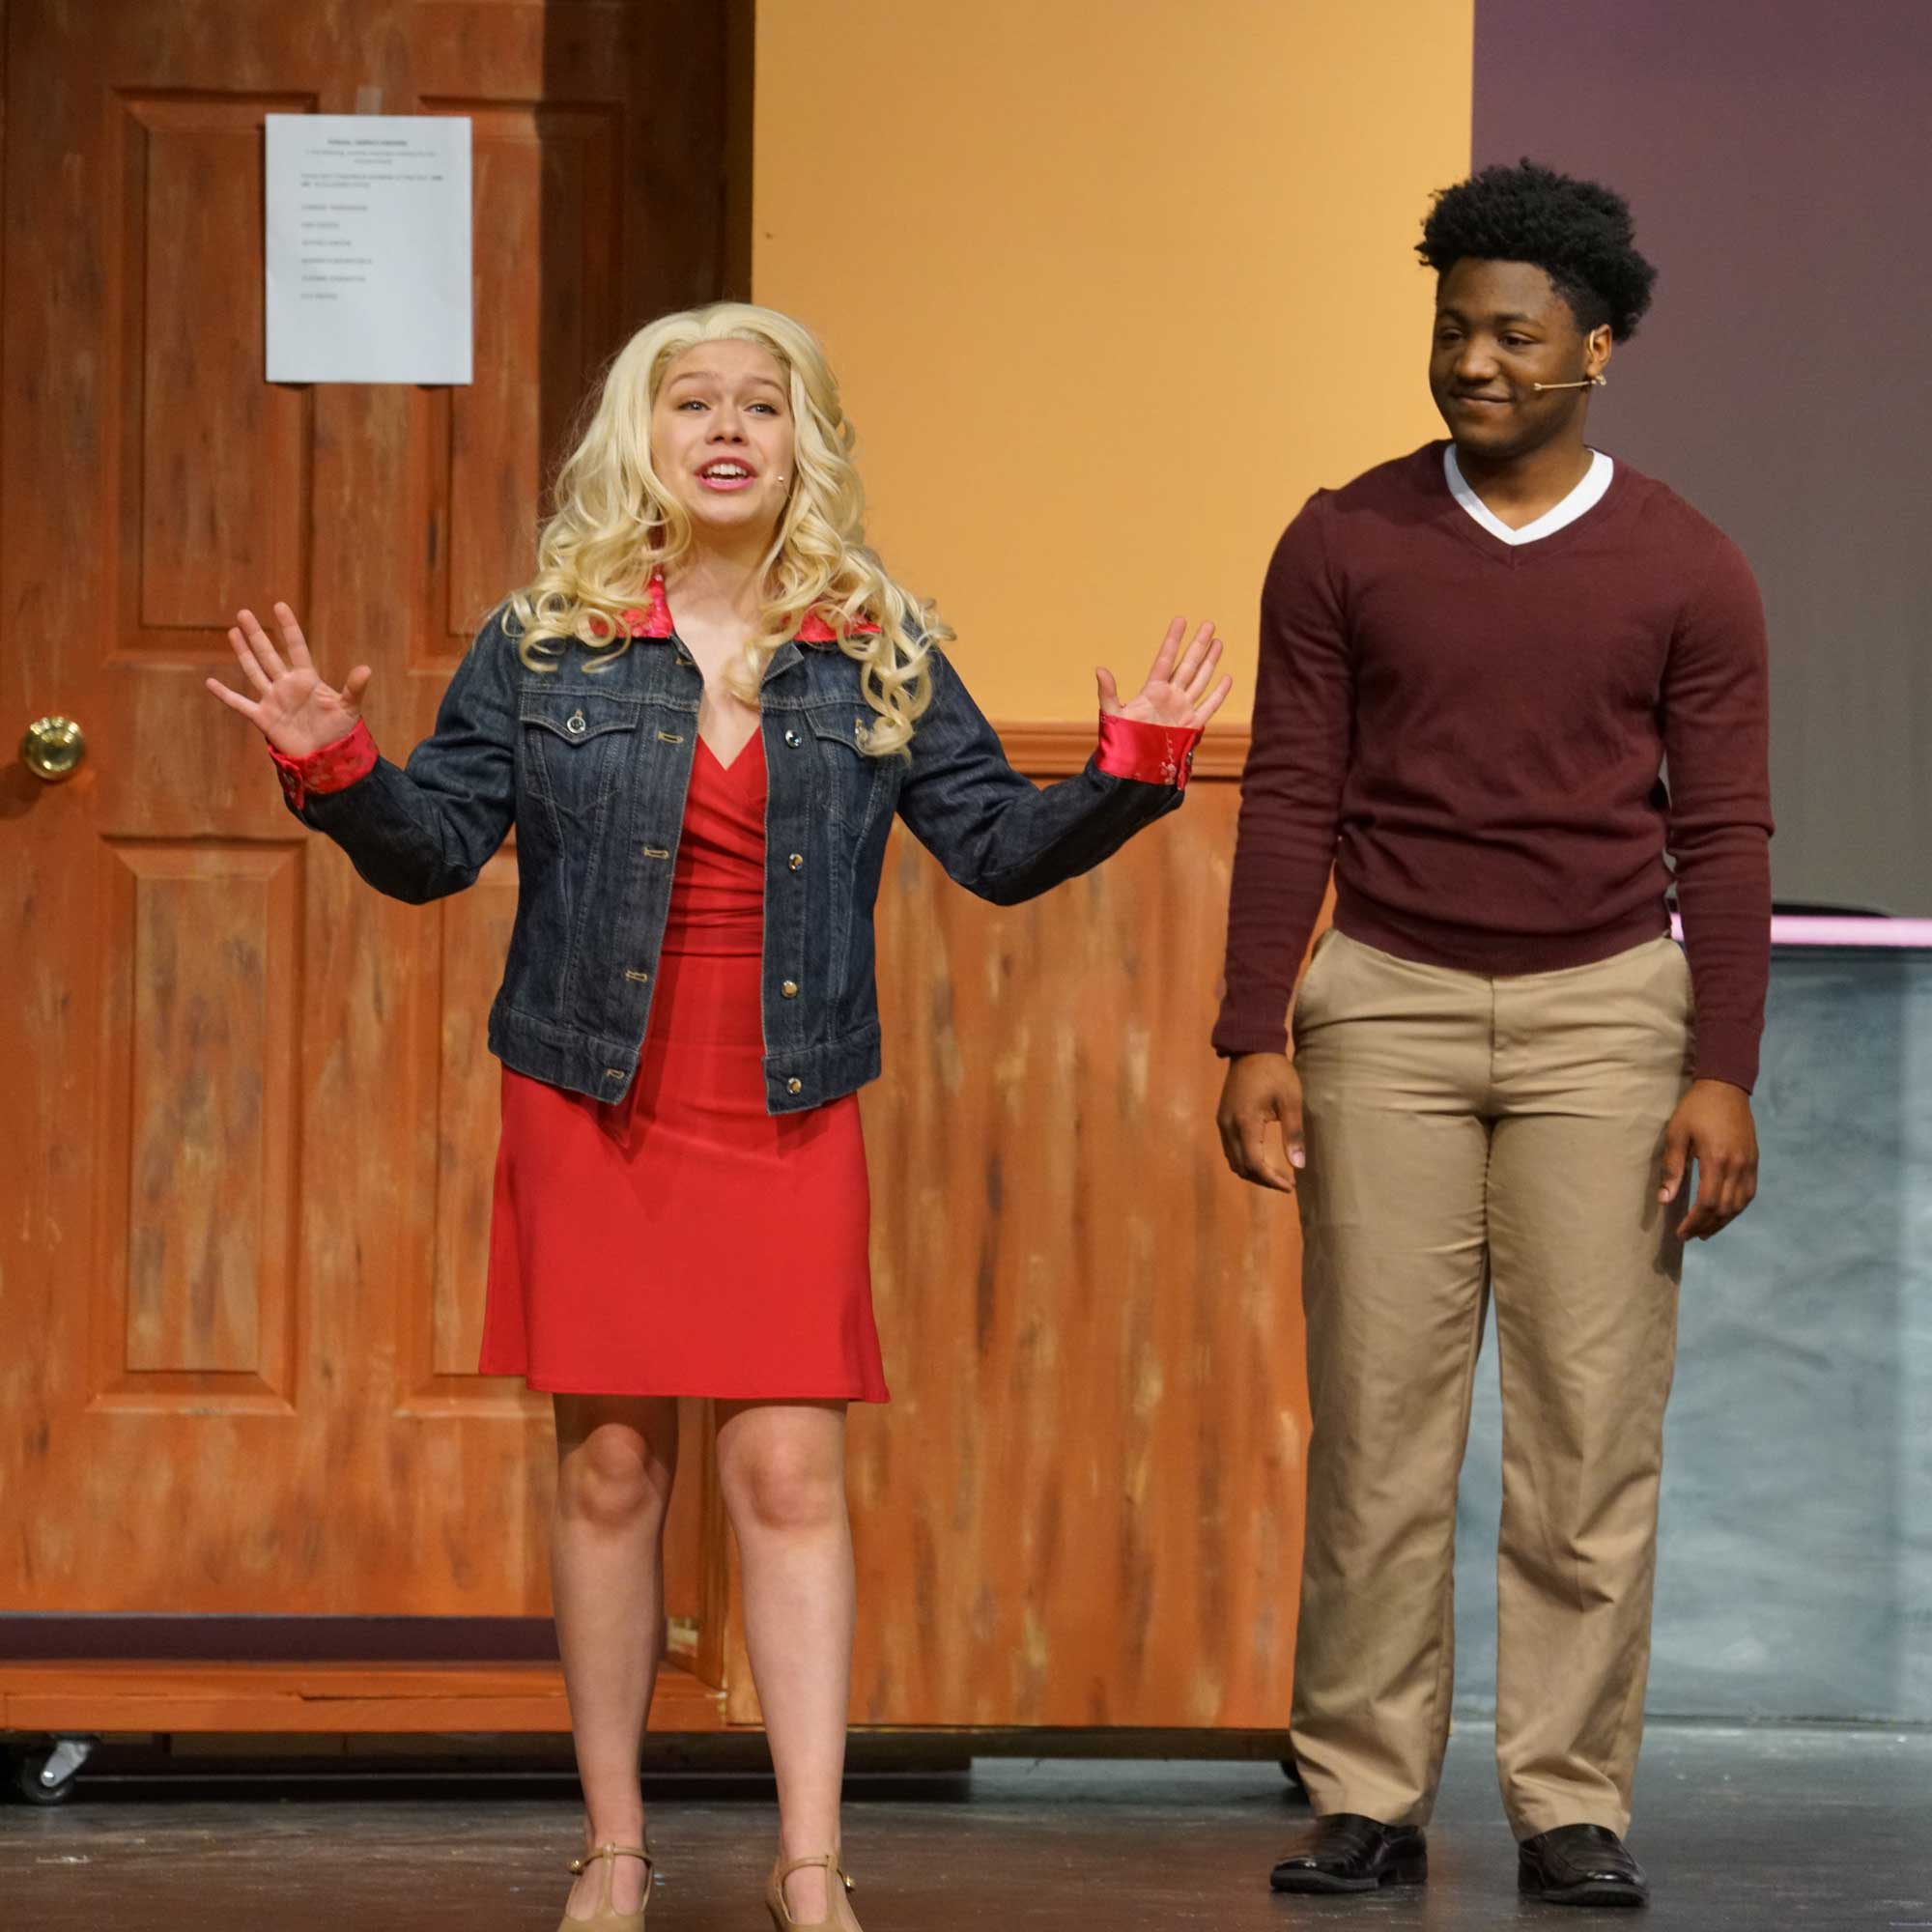 pics-girls-legally-blonde-from-legally-blonde-the-musical